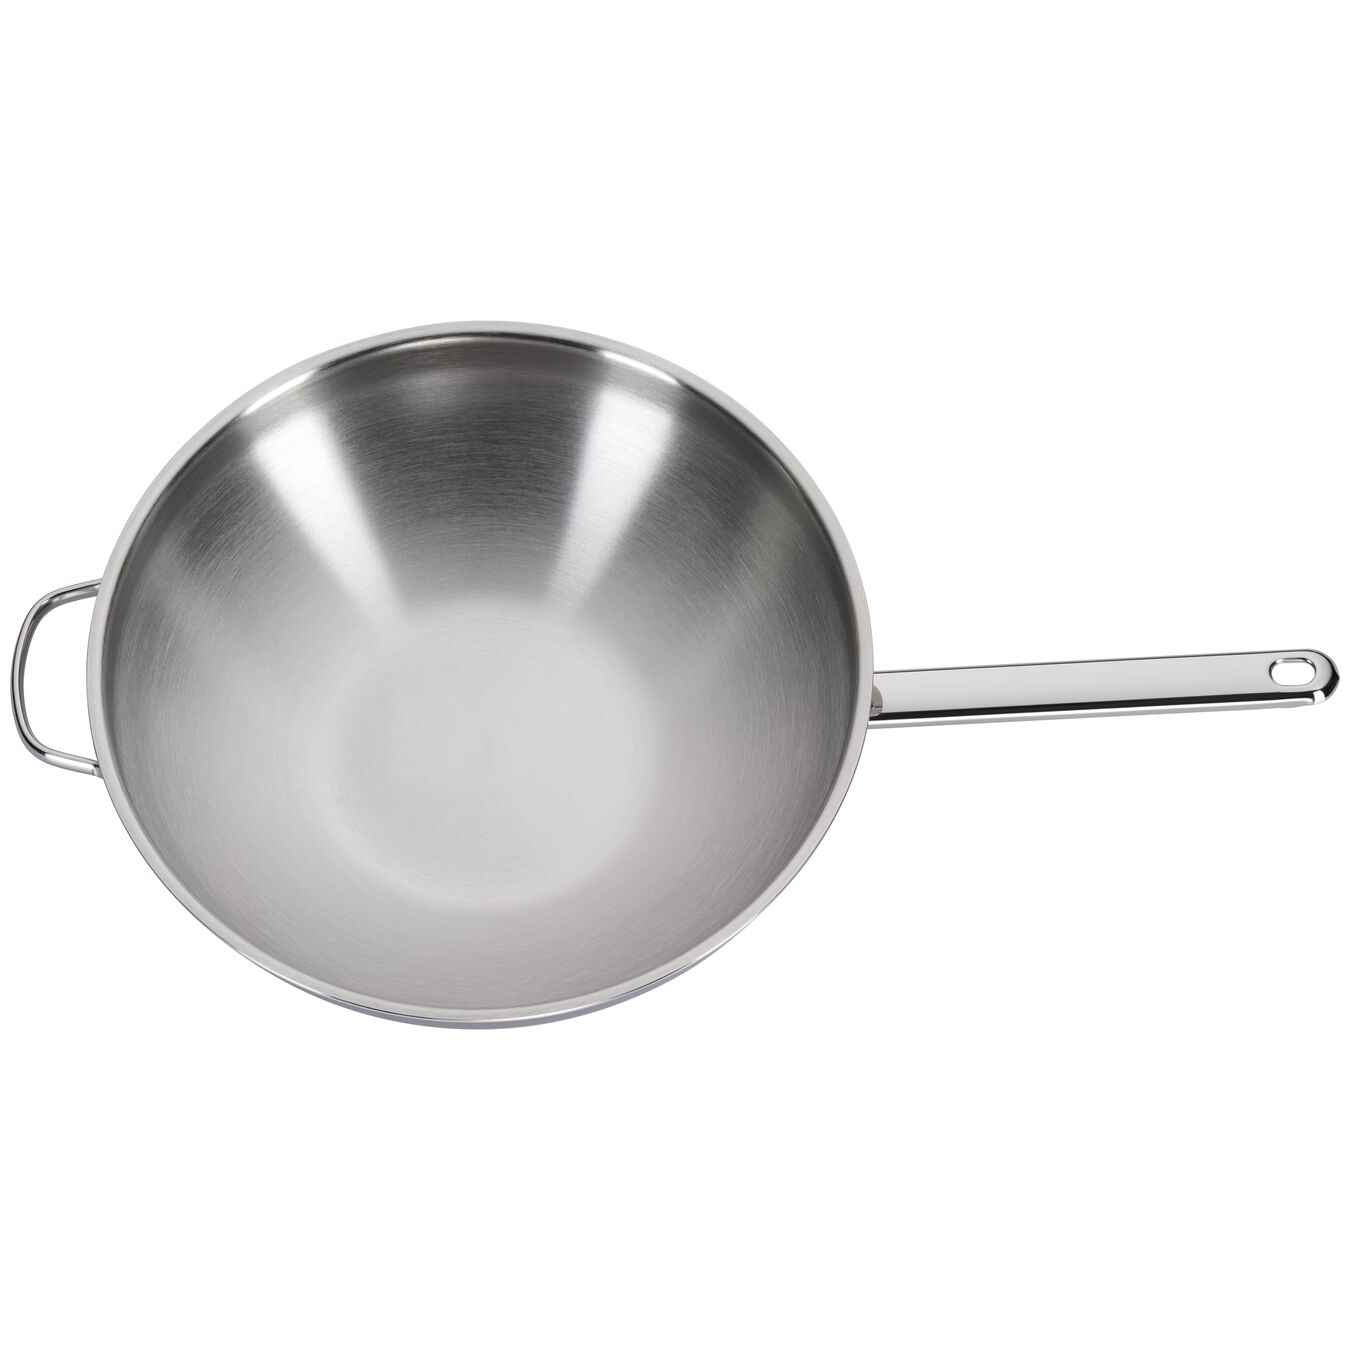 5.8-qt Stainless Steel Flat Bottom Wok with Helper Handle,,large 3